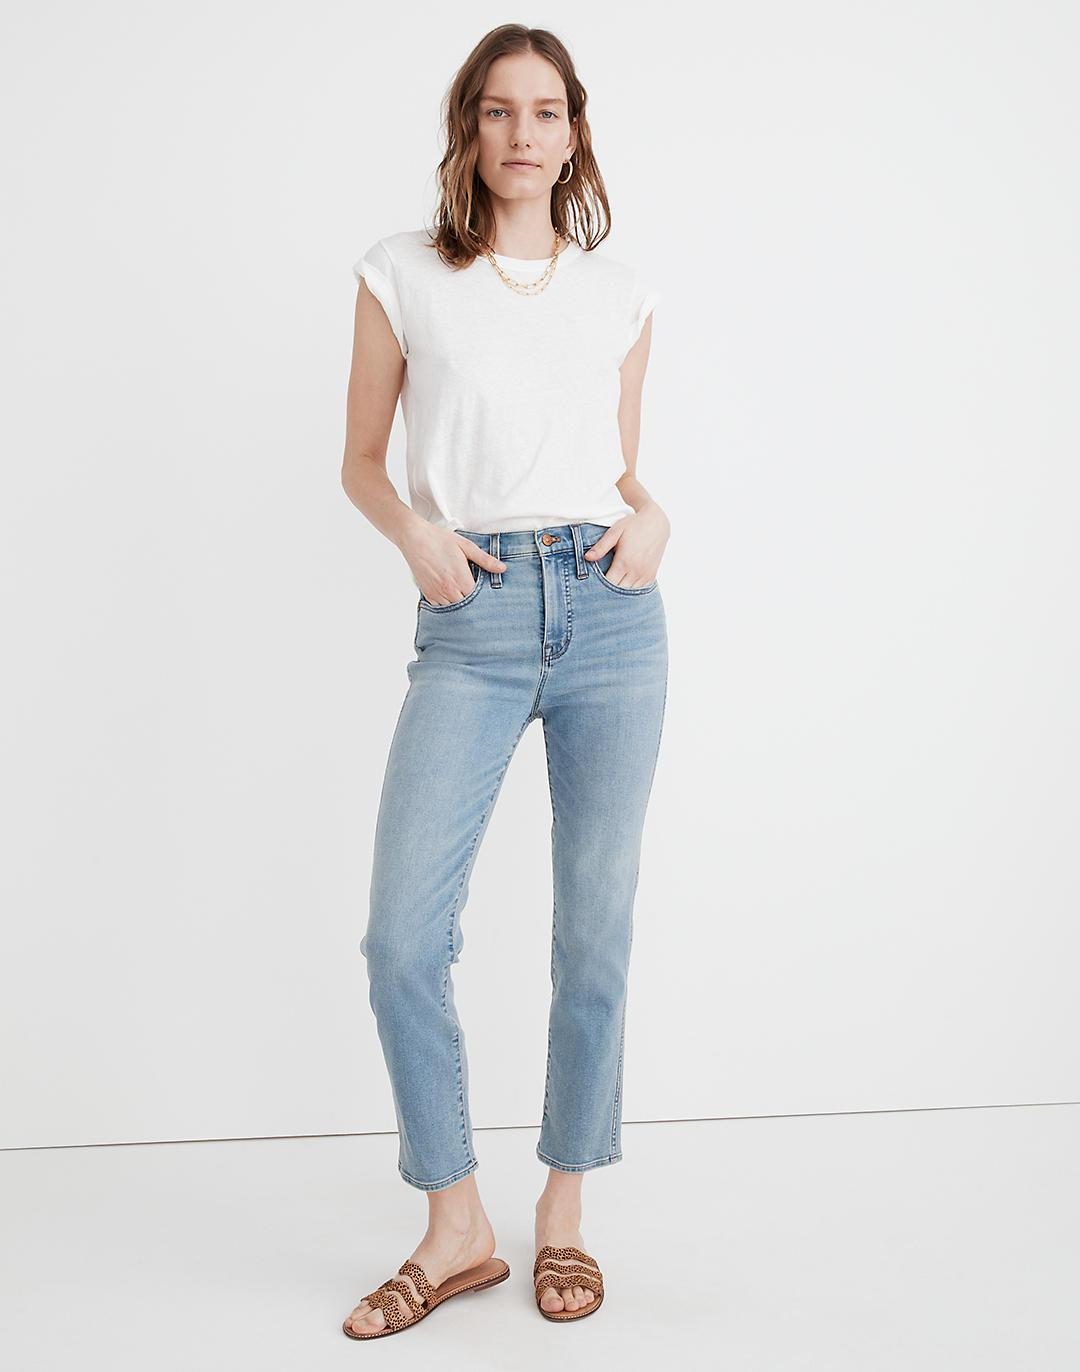 Tall Roadtripper Supersoft Stovepipe Jeans in Plattwood Wash